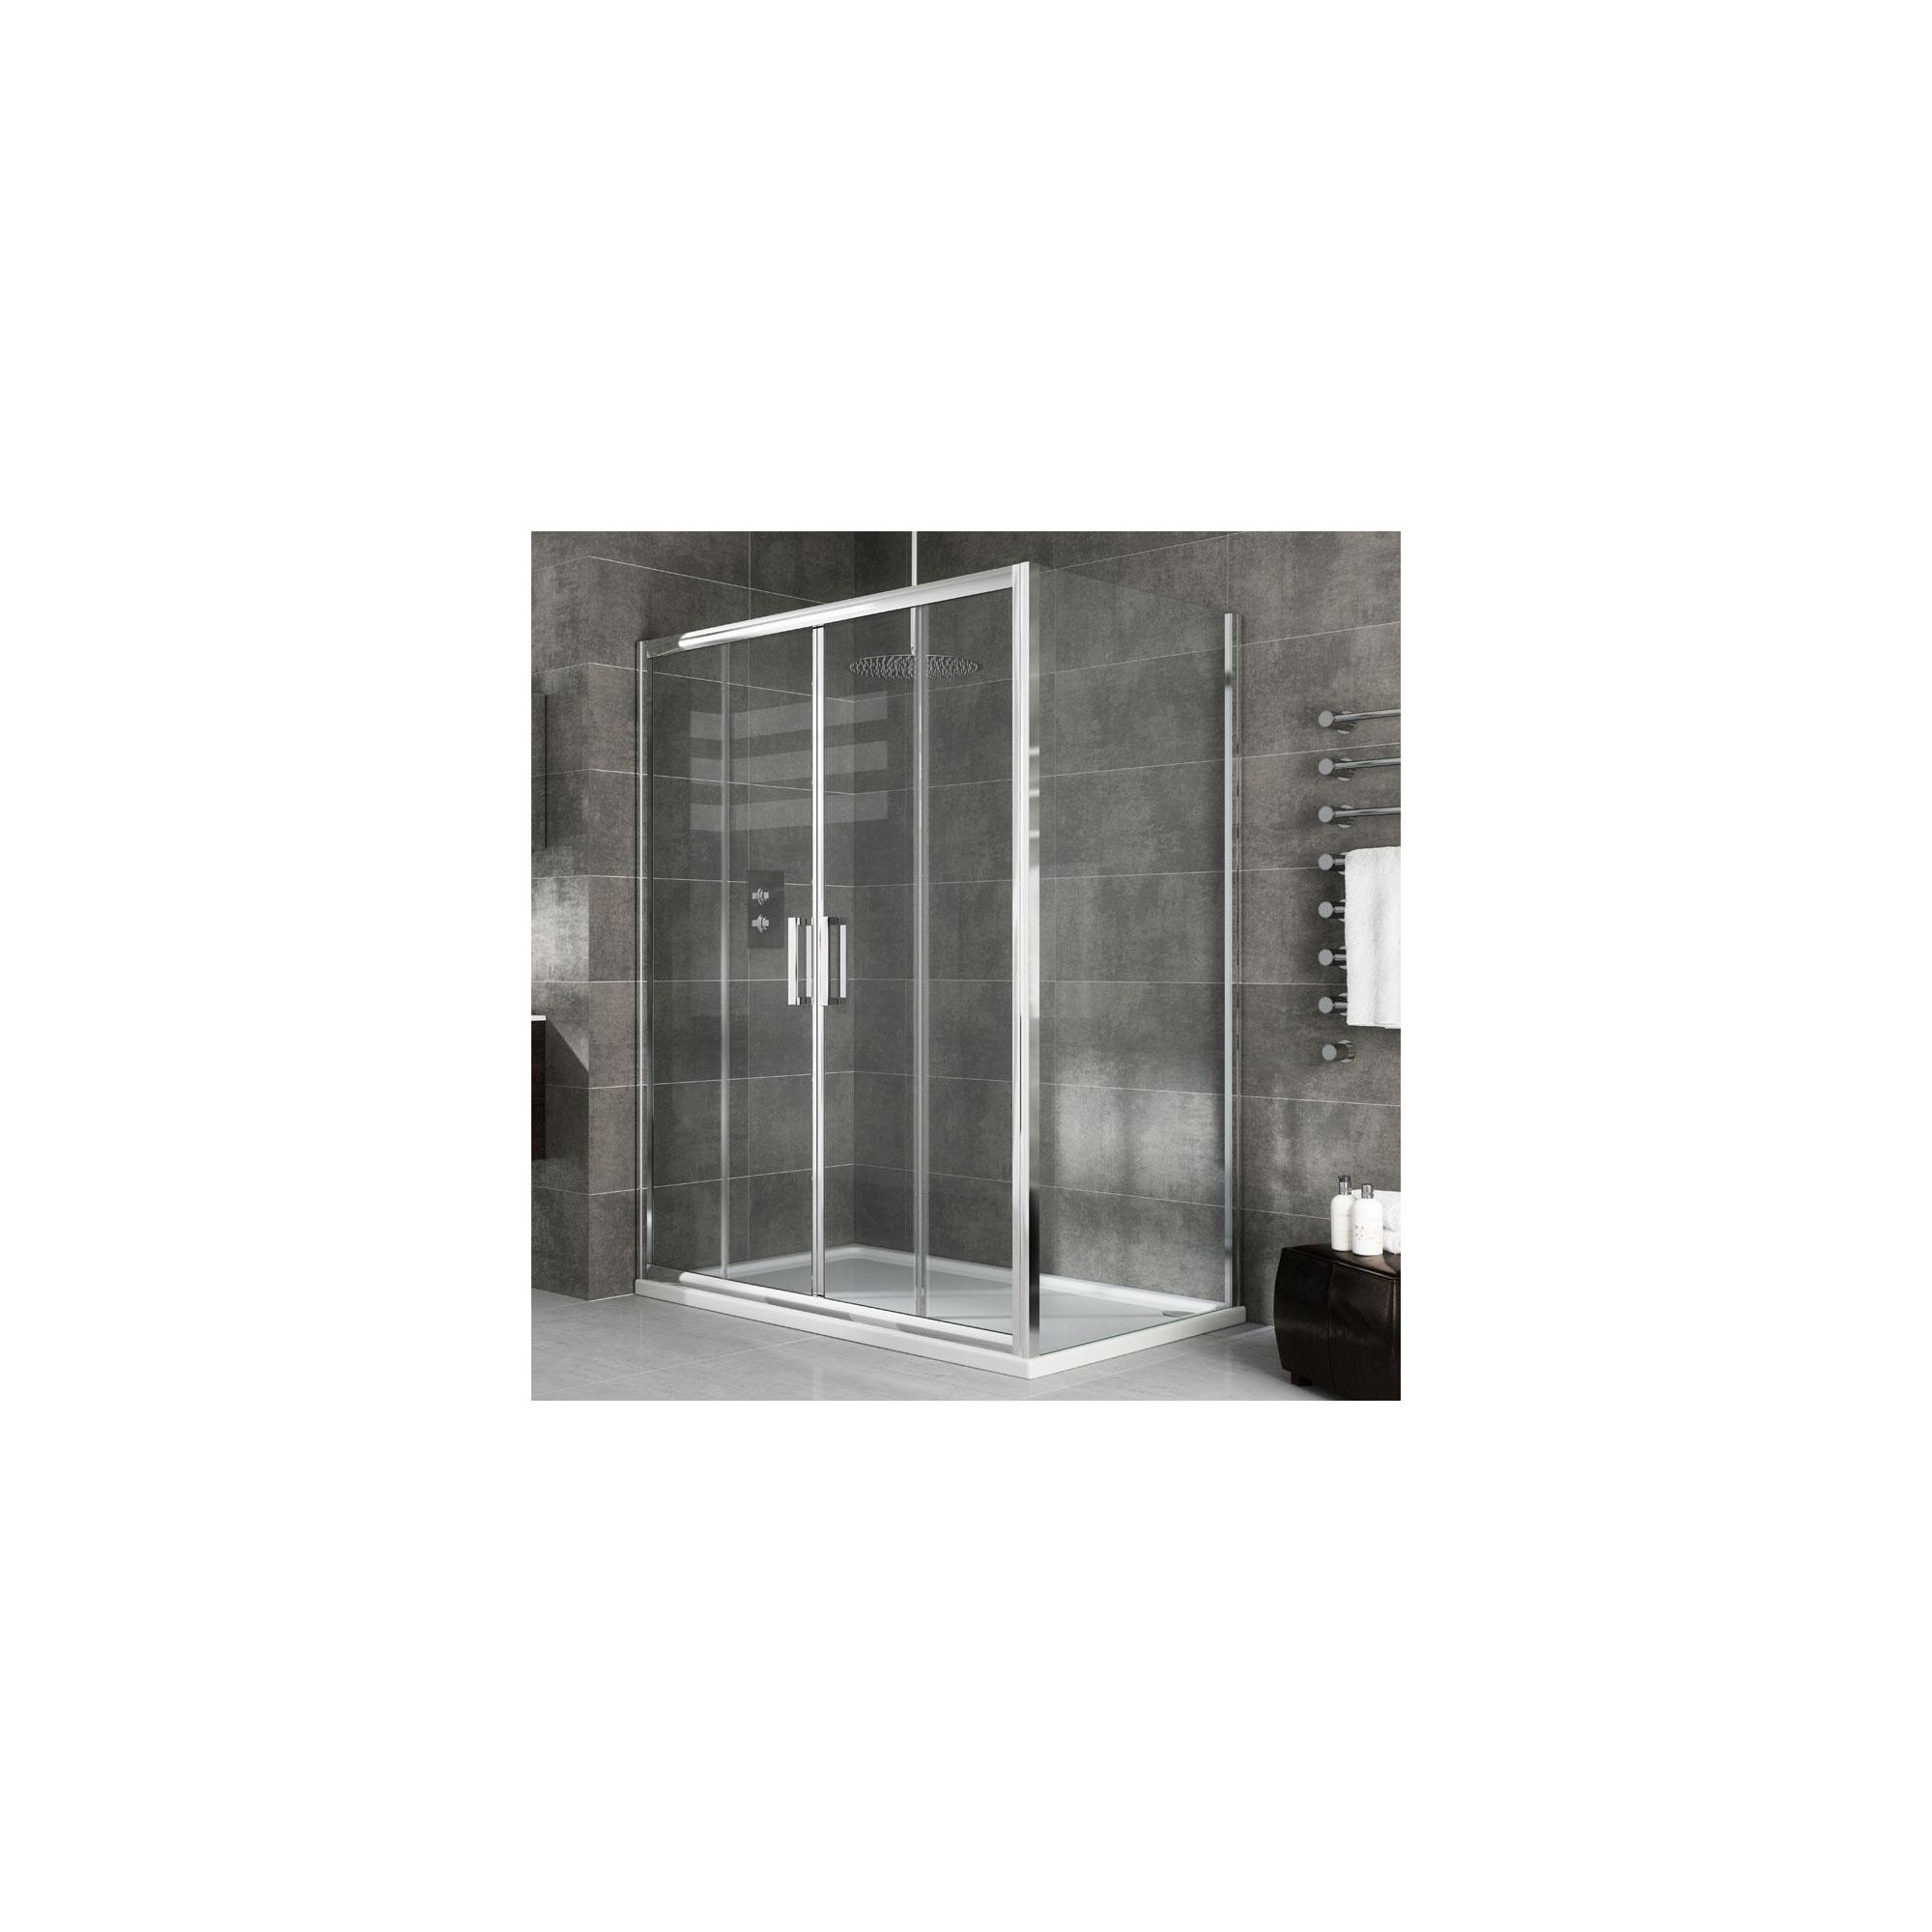 Elemis Eternity Two-Panel Jumbo Sliding Shower Door, 1200mm Wide, 8mm Glass at Tesco Direct